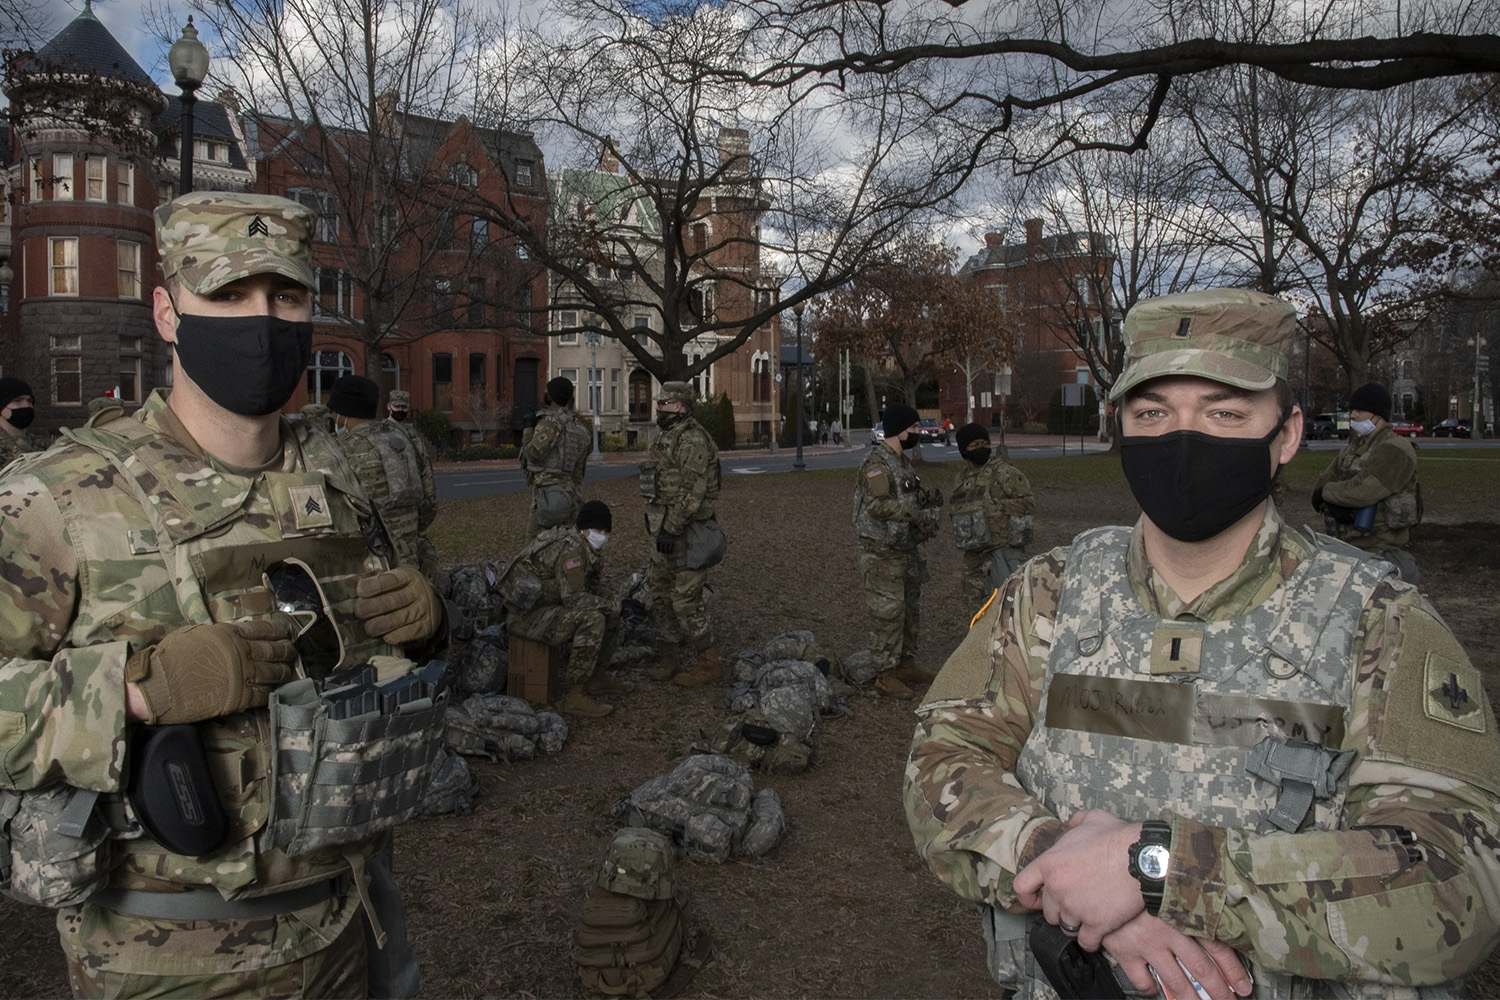 Two white men wearing camoflage National Guard fatigues and black facemask look at the camera. Behind them, are other National Guardsmen standing a park in downtown D.C.